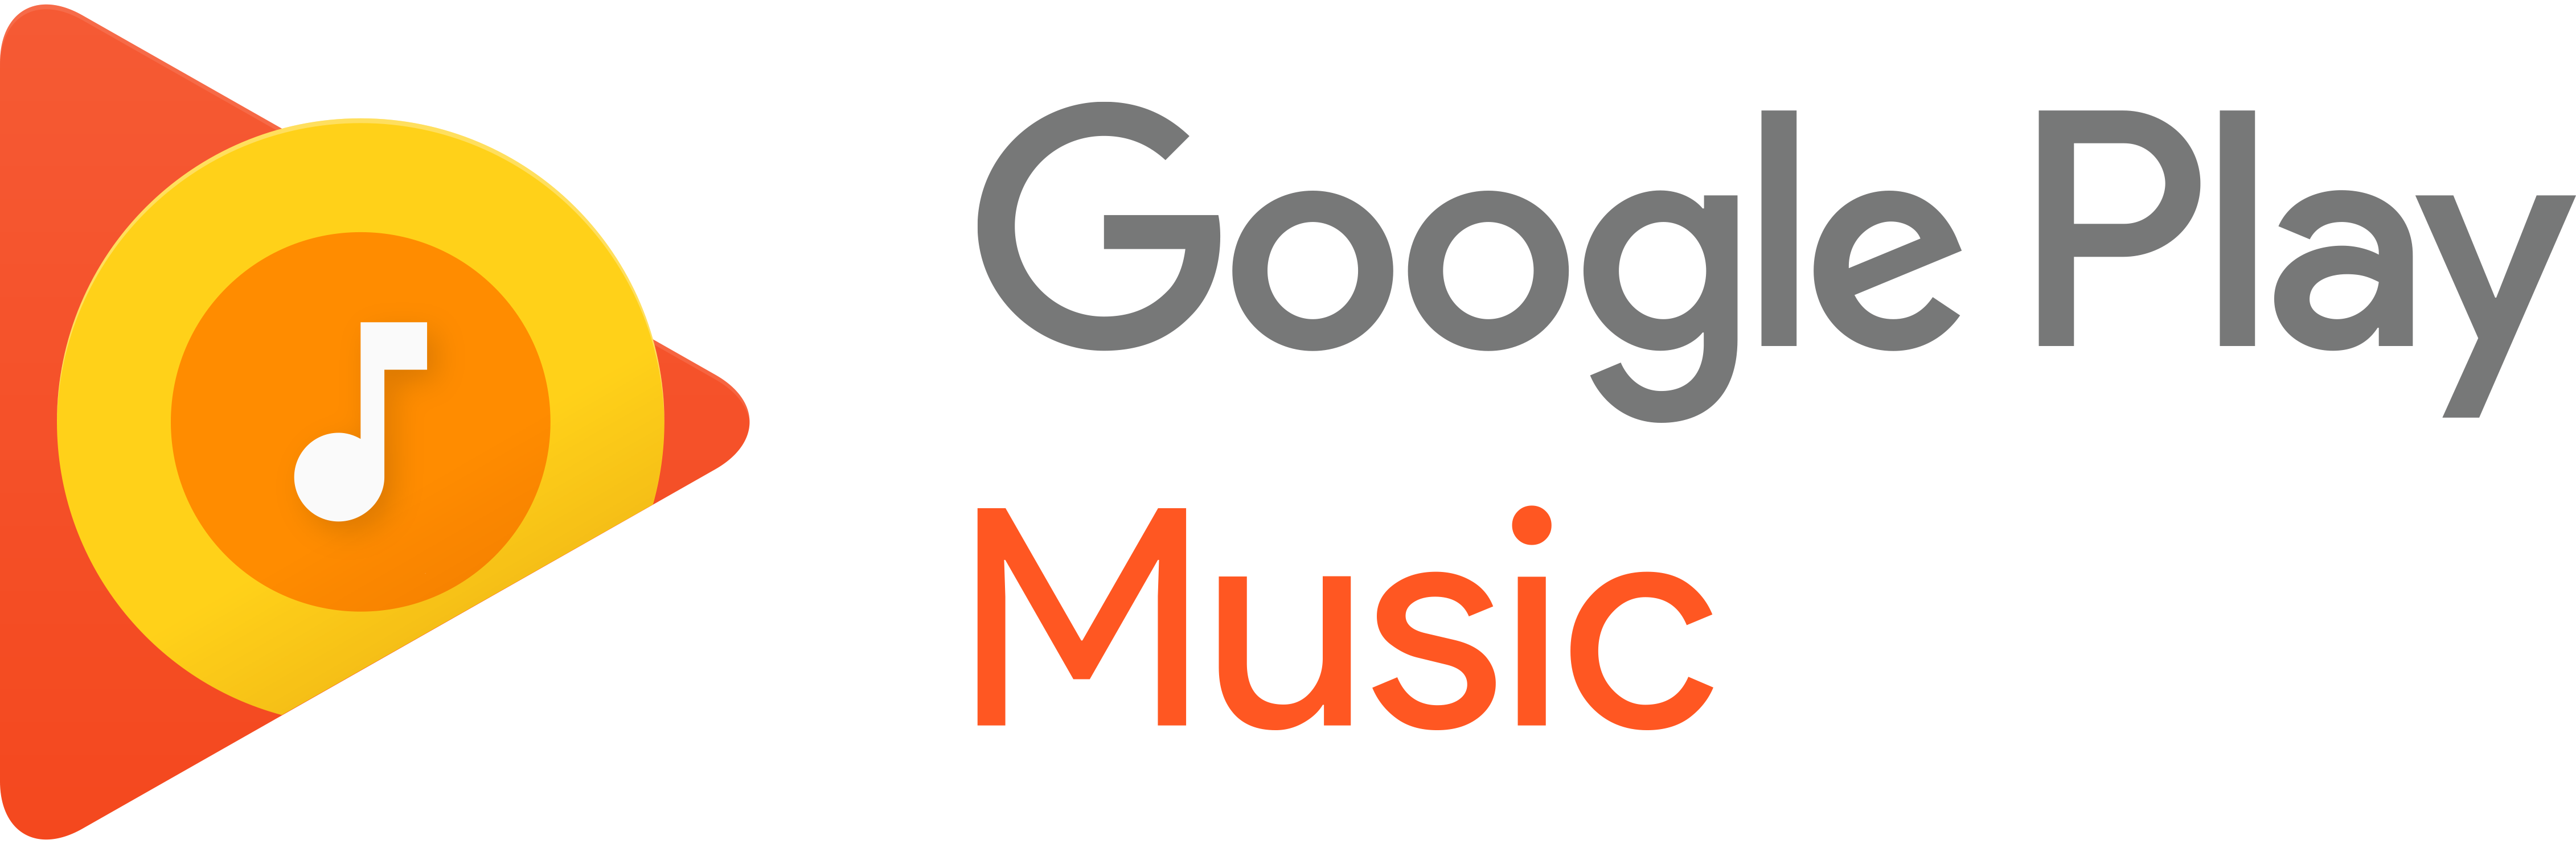 Google Play Music Announces City Soundtracks As First Original Podcast |  TalkAndroid.com